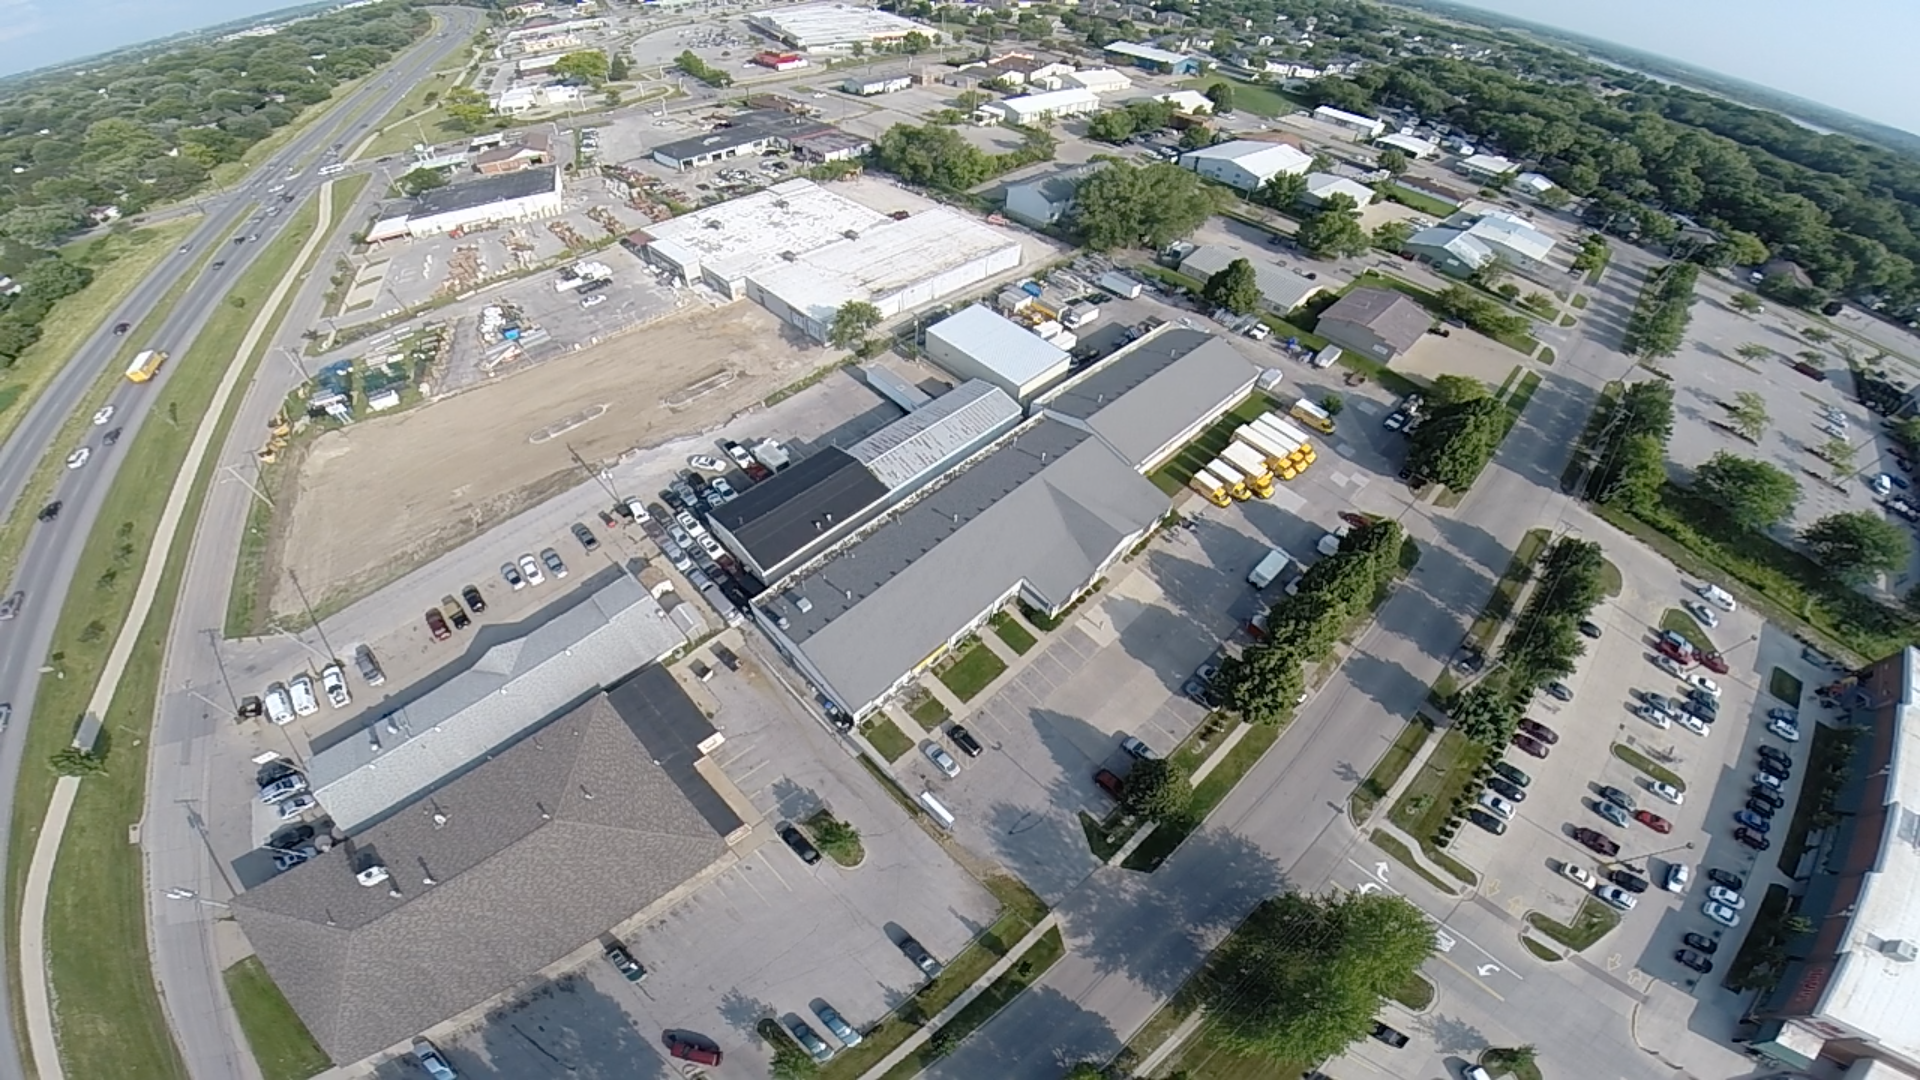 Aerial view of Big Ten Rentals at 1820 Boyrum St. We called Iowa City Municipal Airport at (319) 356-5045 prior to flying because we are inline with runway 2-5. We have been told that flying under 200 feet is fine.